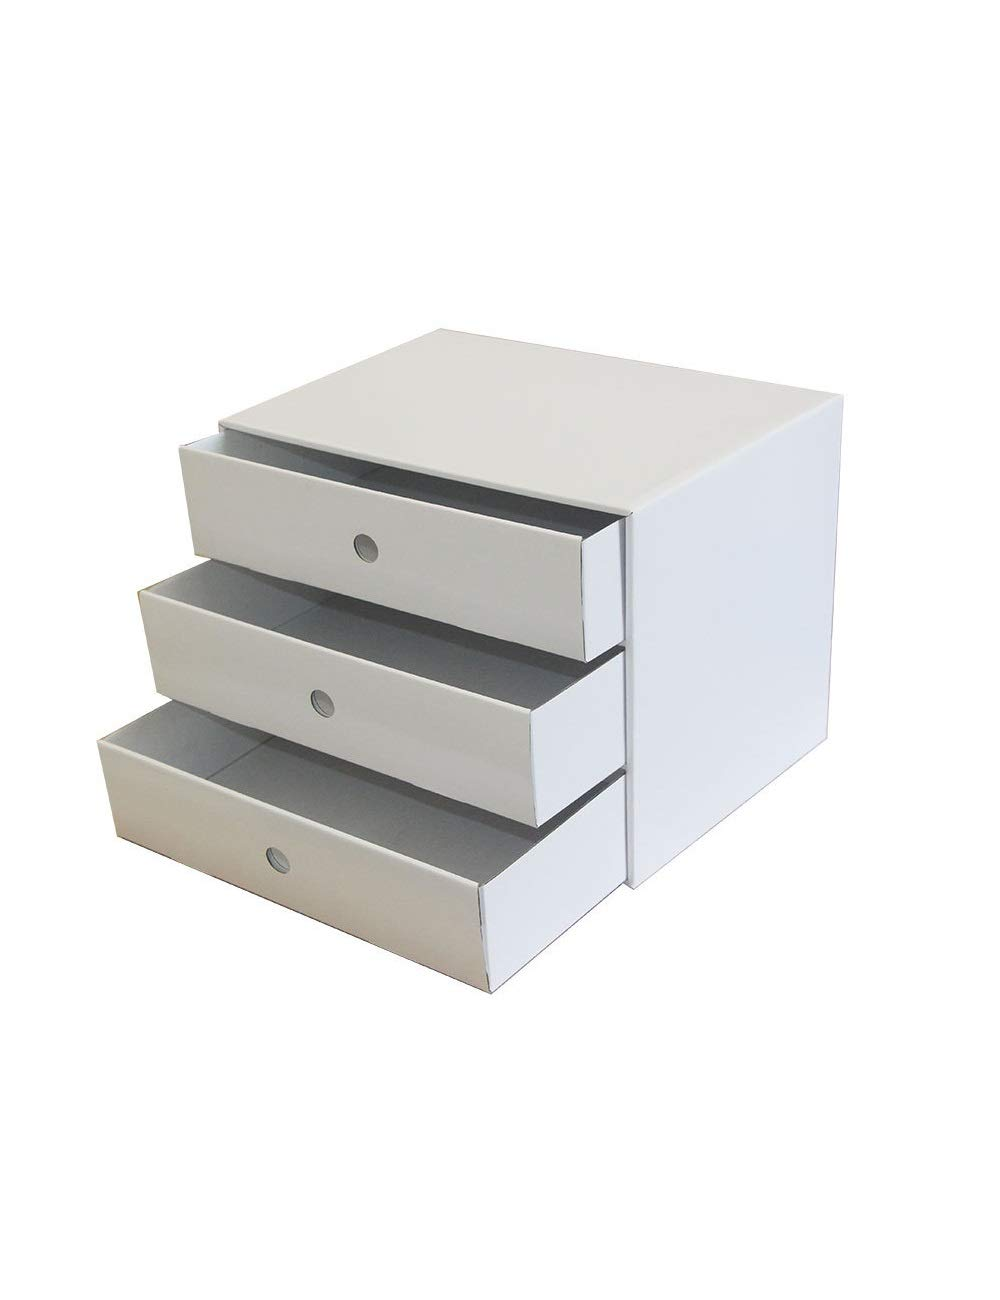 File Cabinets Home Office Furniture Office Desktop Drawer Type File Manager Stationery Cabinet 3 Layers A4 Paper Data Cabinet Storage Box Storage